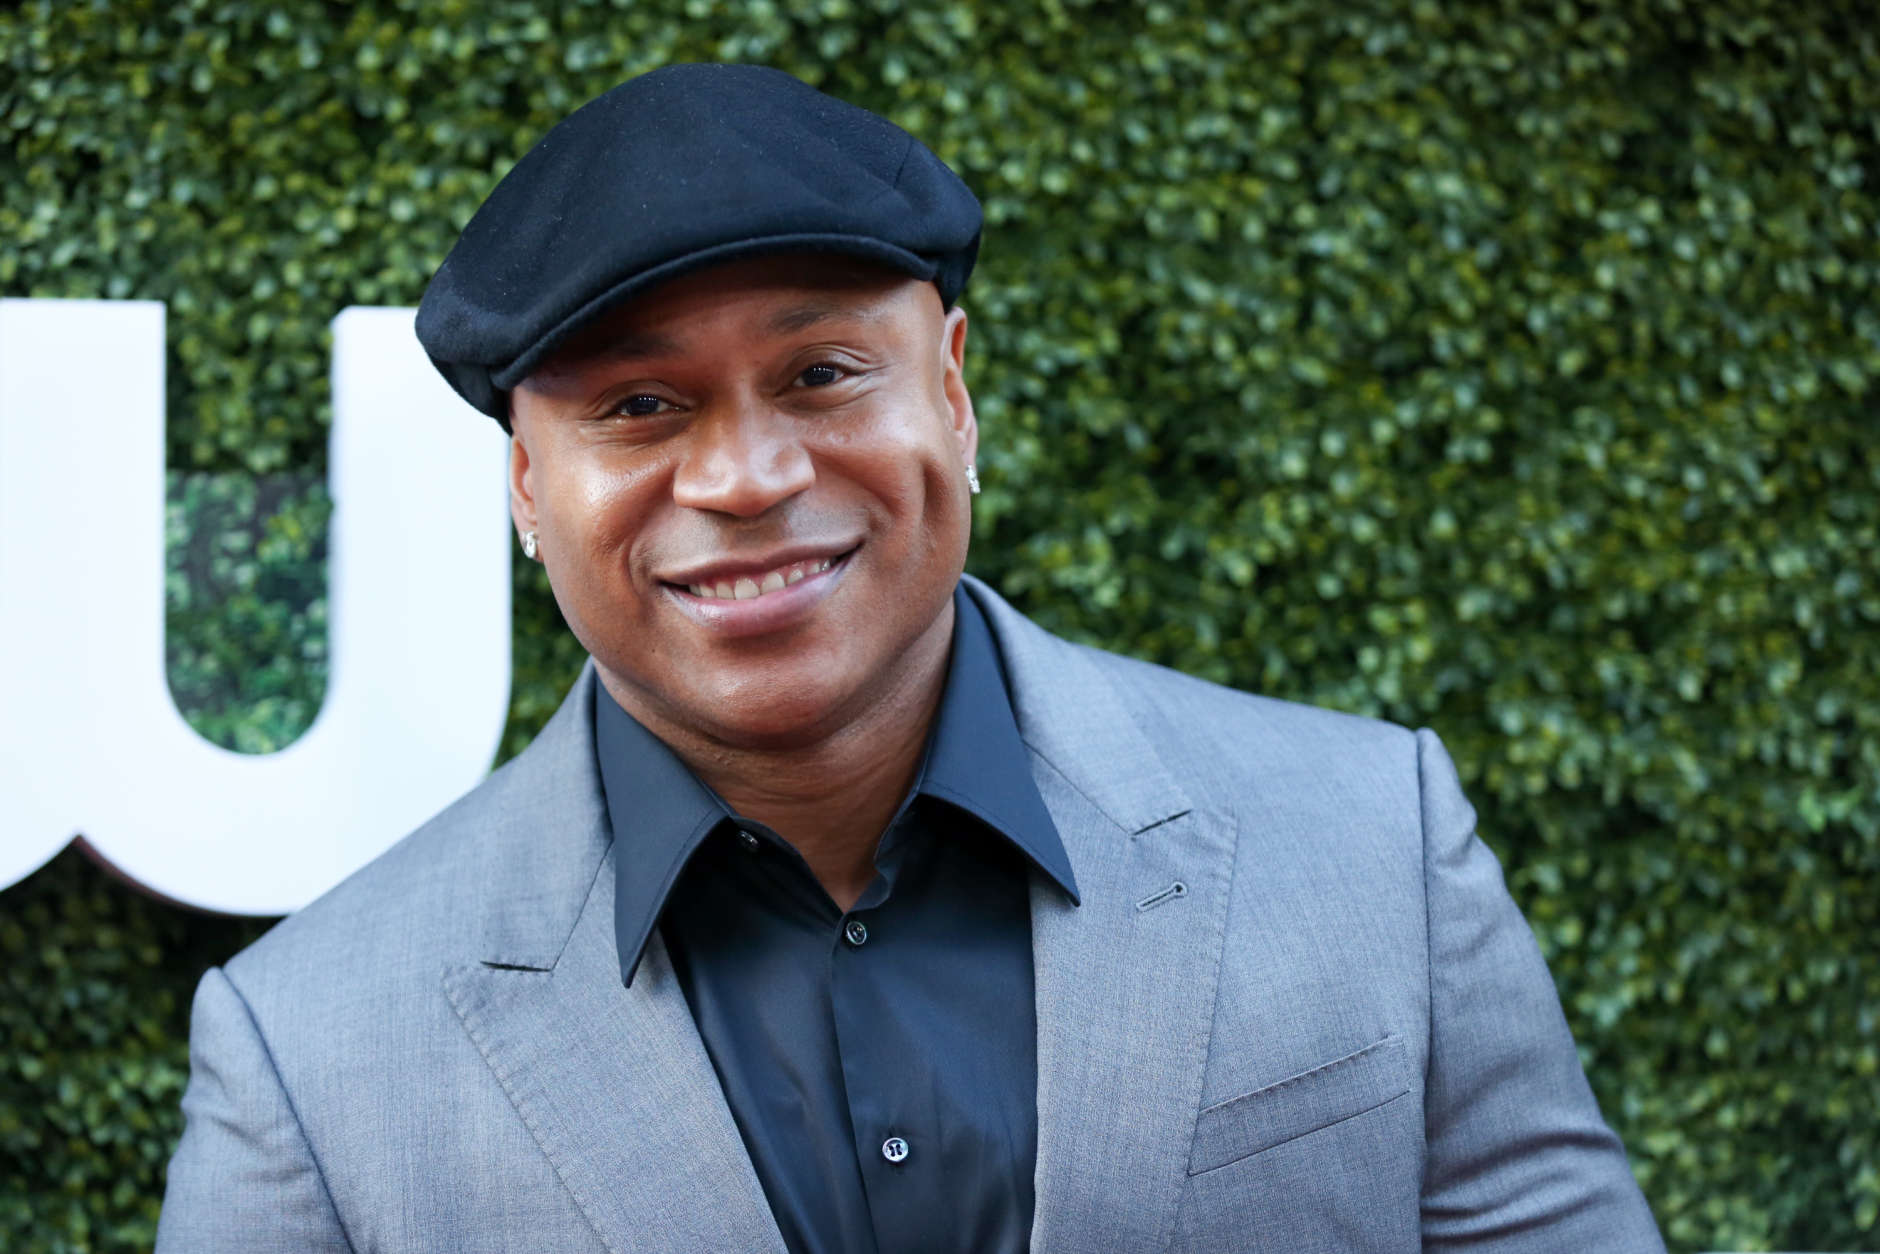 LL Cool J arrives at the Summer TCA CBS, CW, Showtime Party at Pacific Design Center on Wednesday, Aug. 10, 2016, in West Hollywood, Calif. (Photo by Rich Fury/Invision/AP)